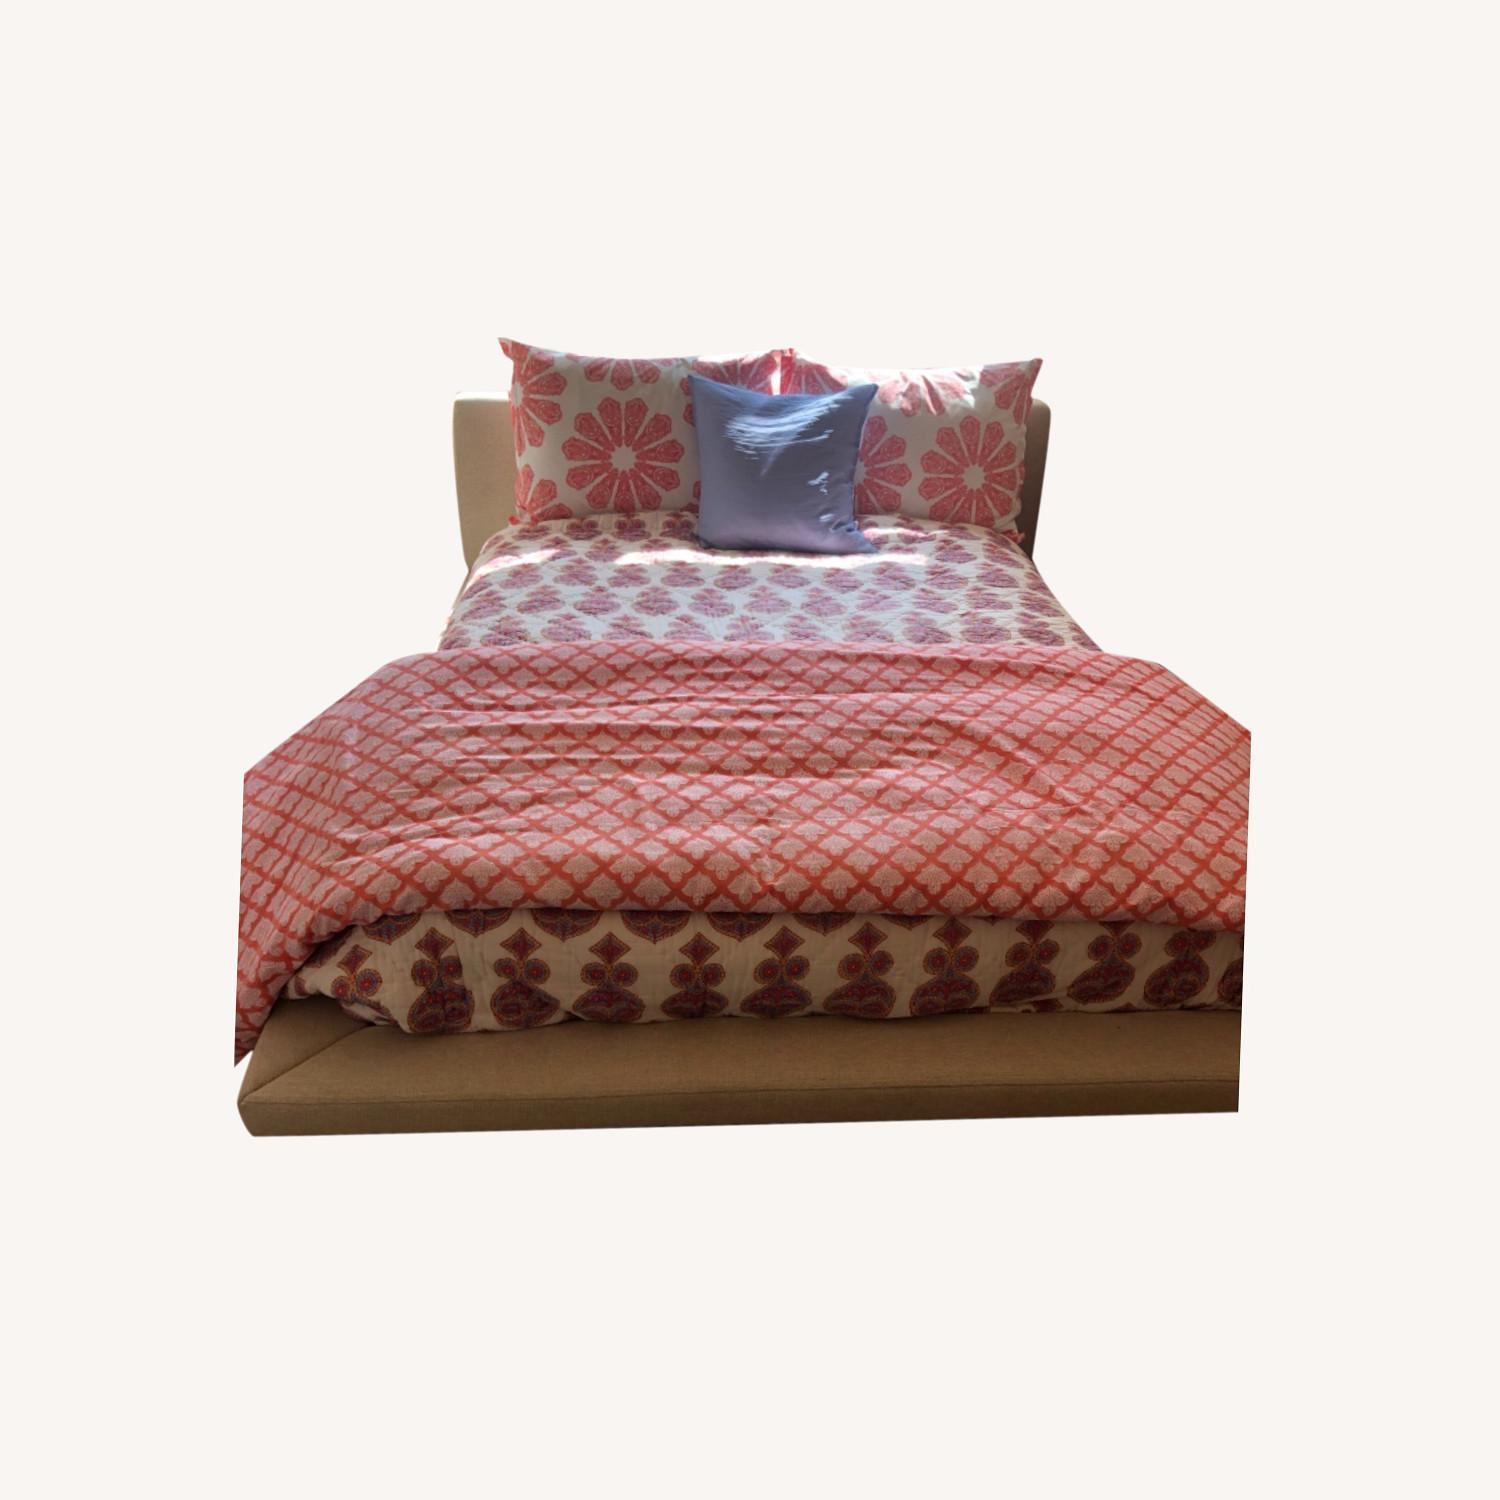 Full Sized Bed in Natural Tweed - image-0